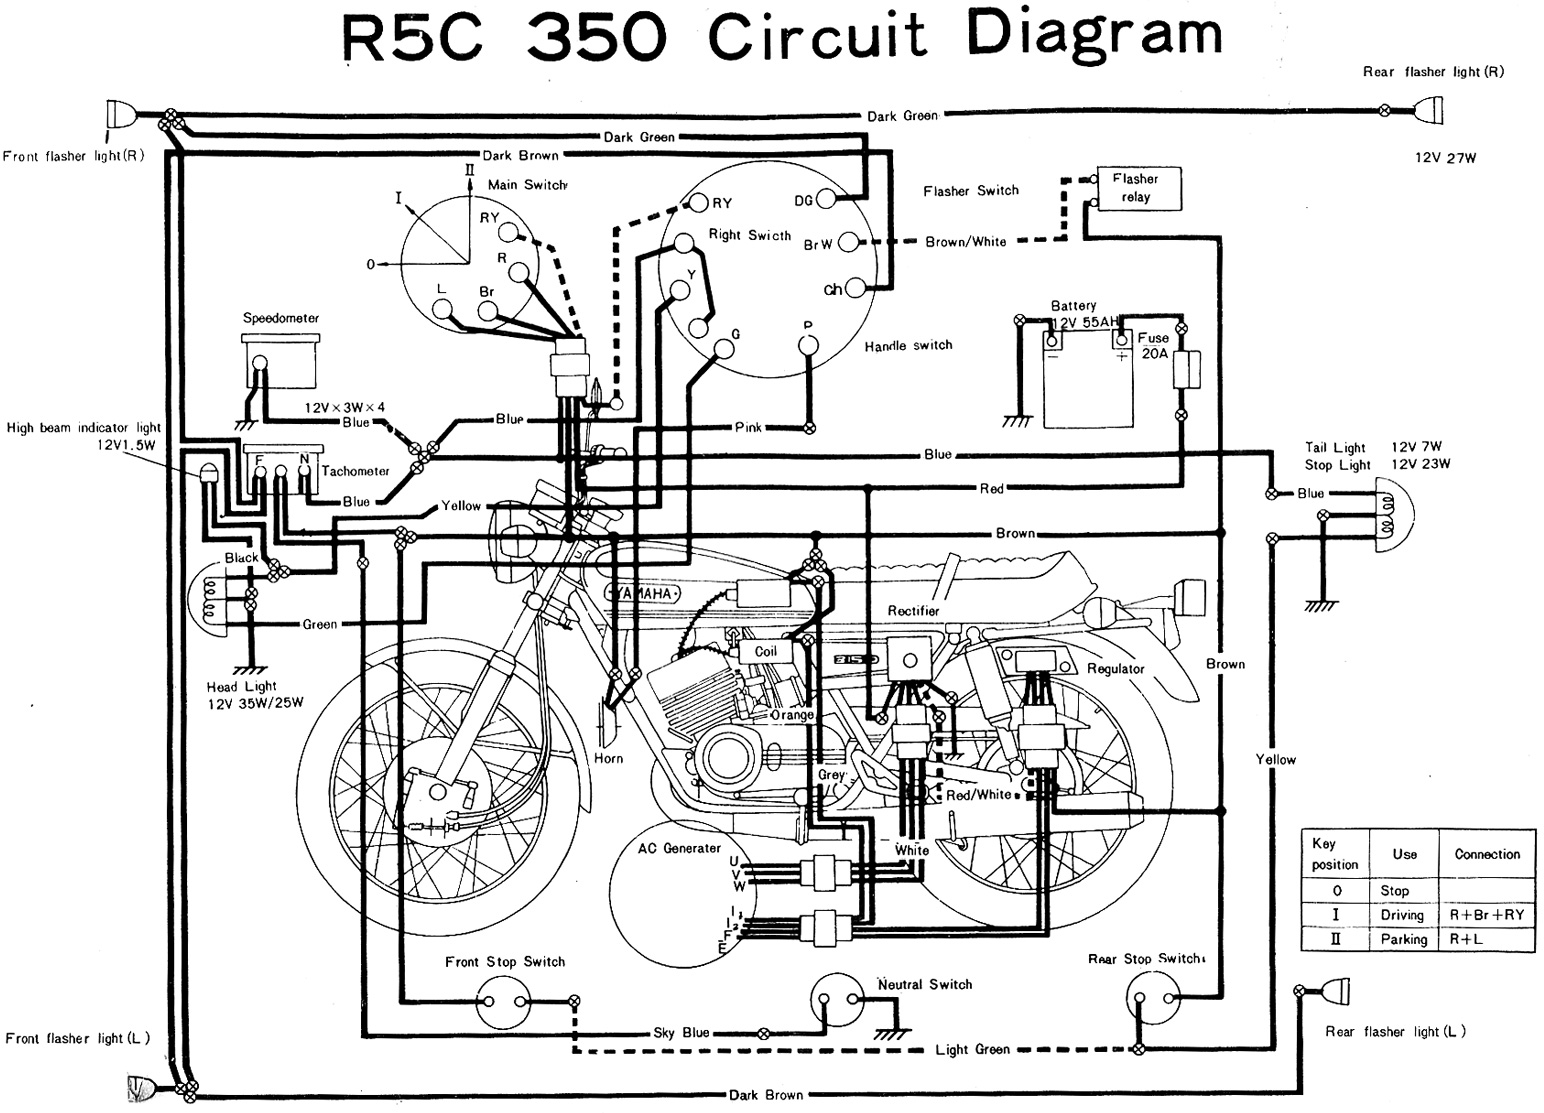 Add A Battery Kit   120A together with Hsr412 Solid State Relay Parallel Circuit Connection Not Working besides 497225615083433085 moreover Alarm Systems And Products likewise Yamaha Rd350 R5c Wiring Diagram. on schematic circuit diagram of house wiring